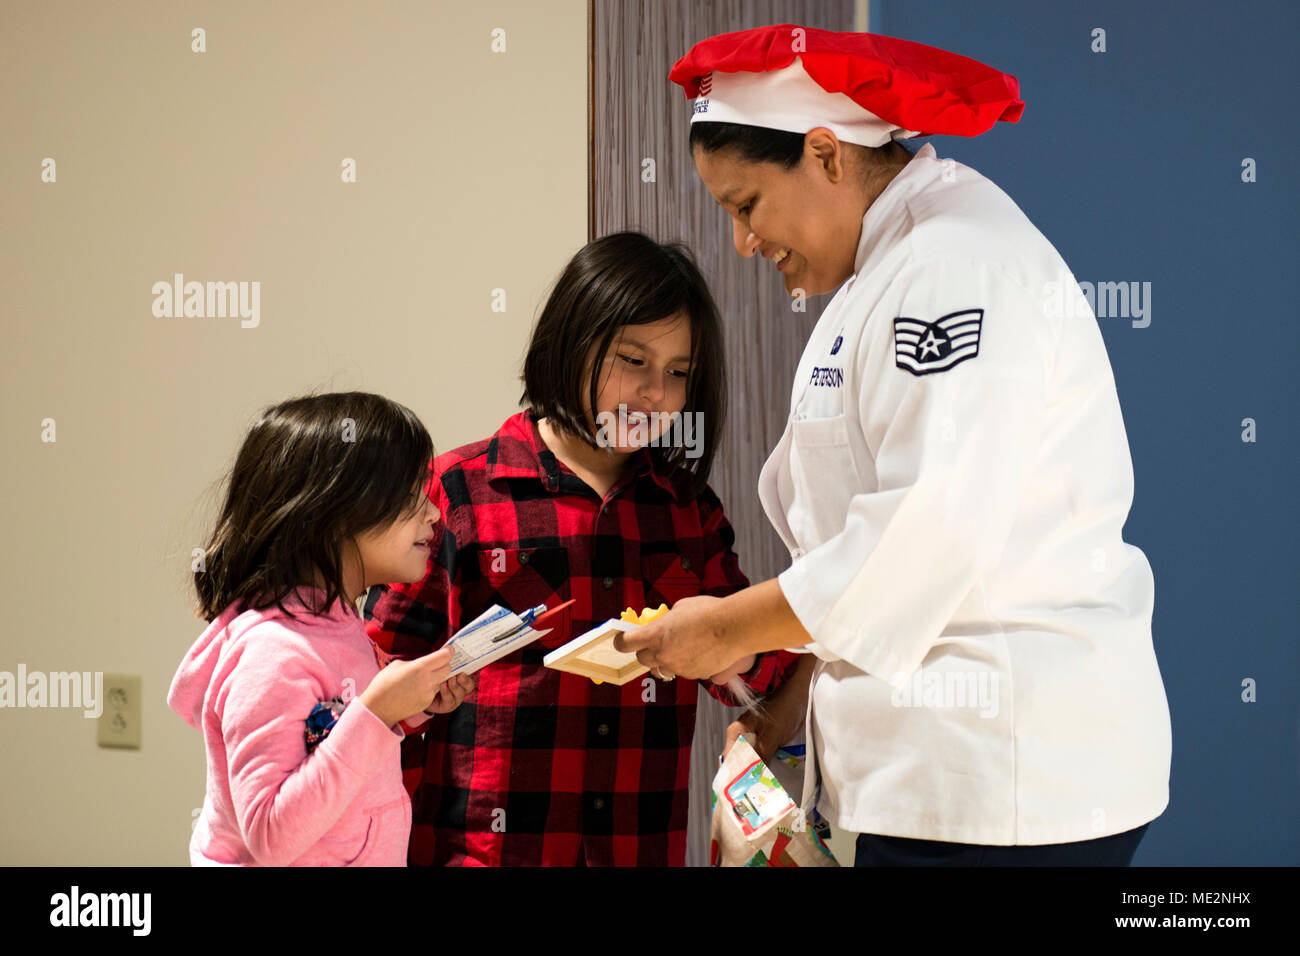 Osan Dfac Christmas 2020 Page 3   1st Class Dining High Resolution Stock Photography and